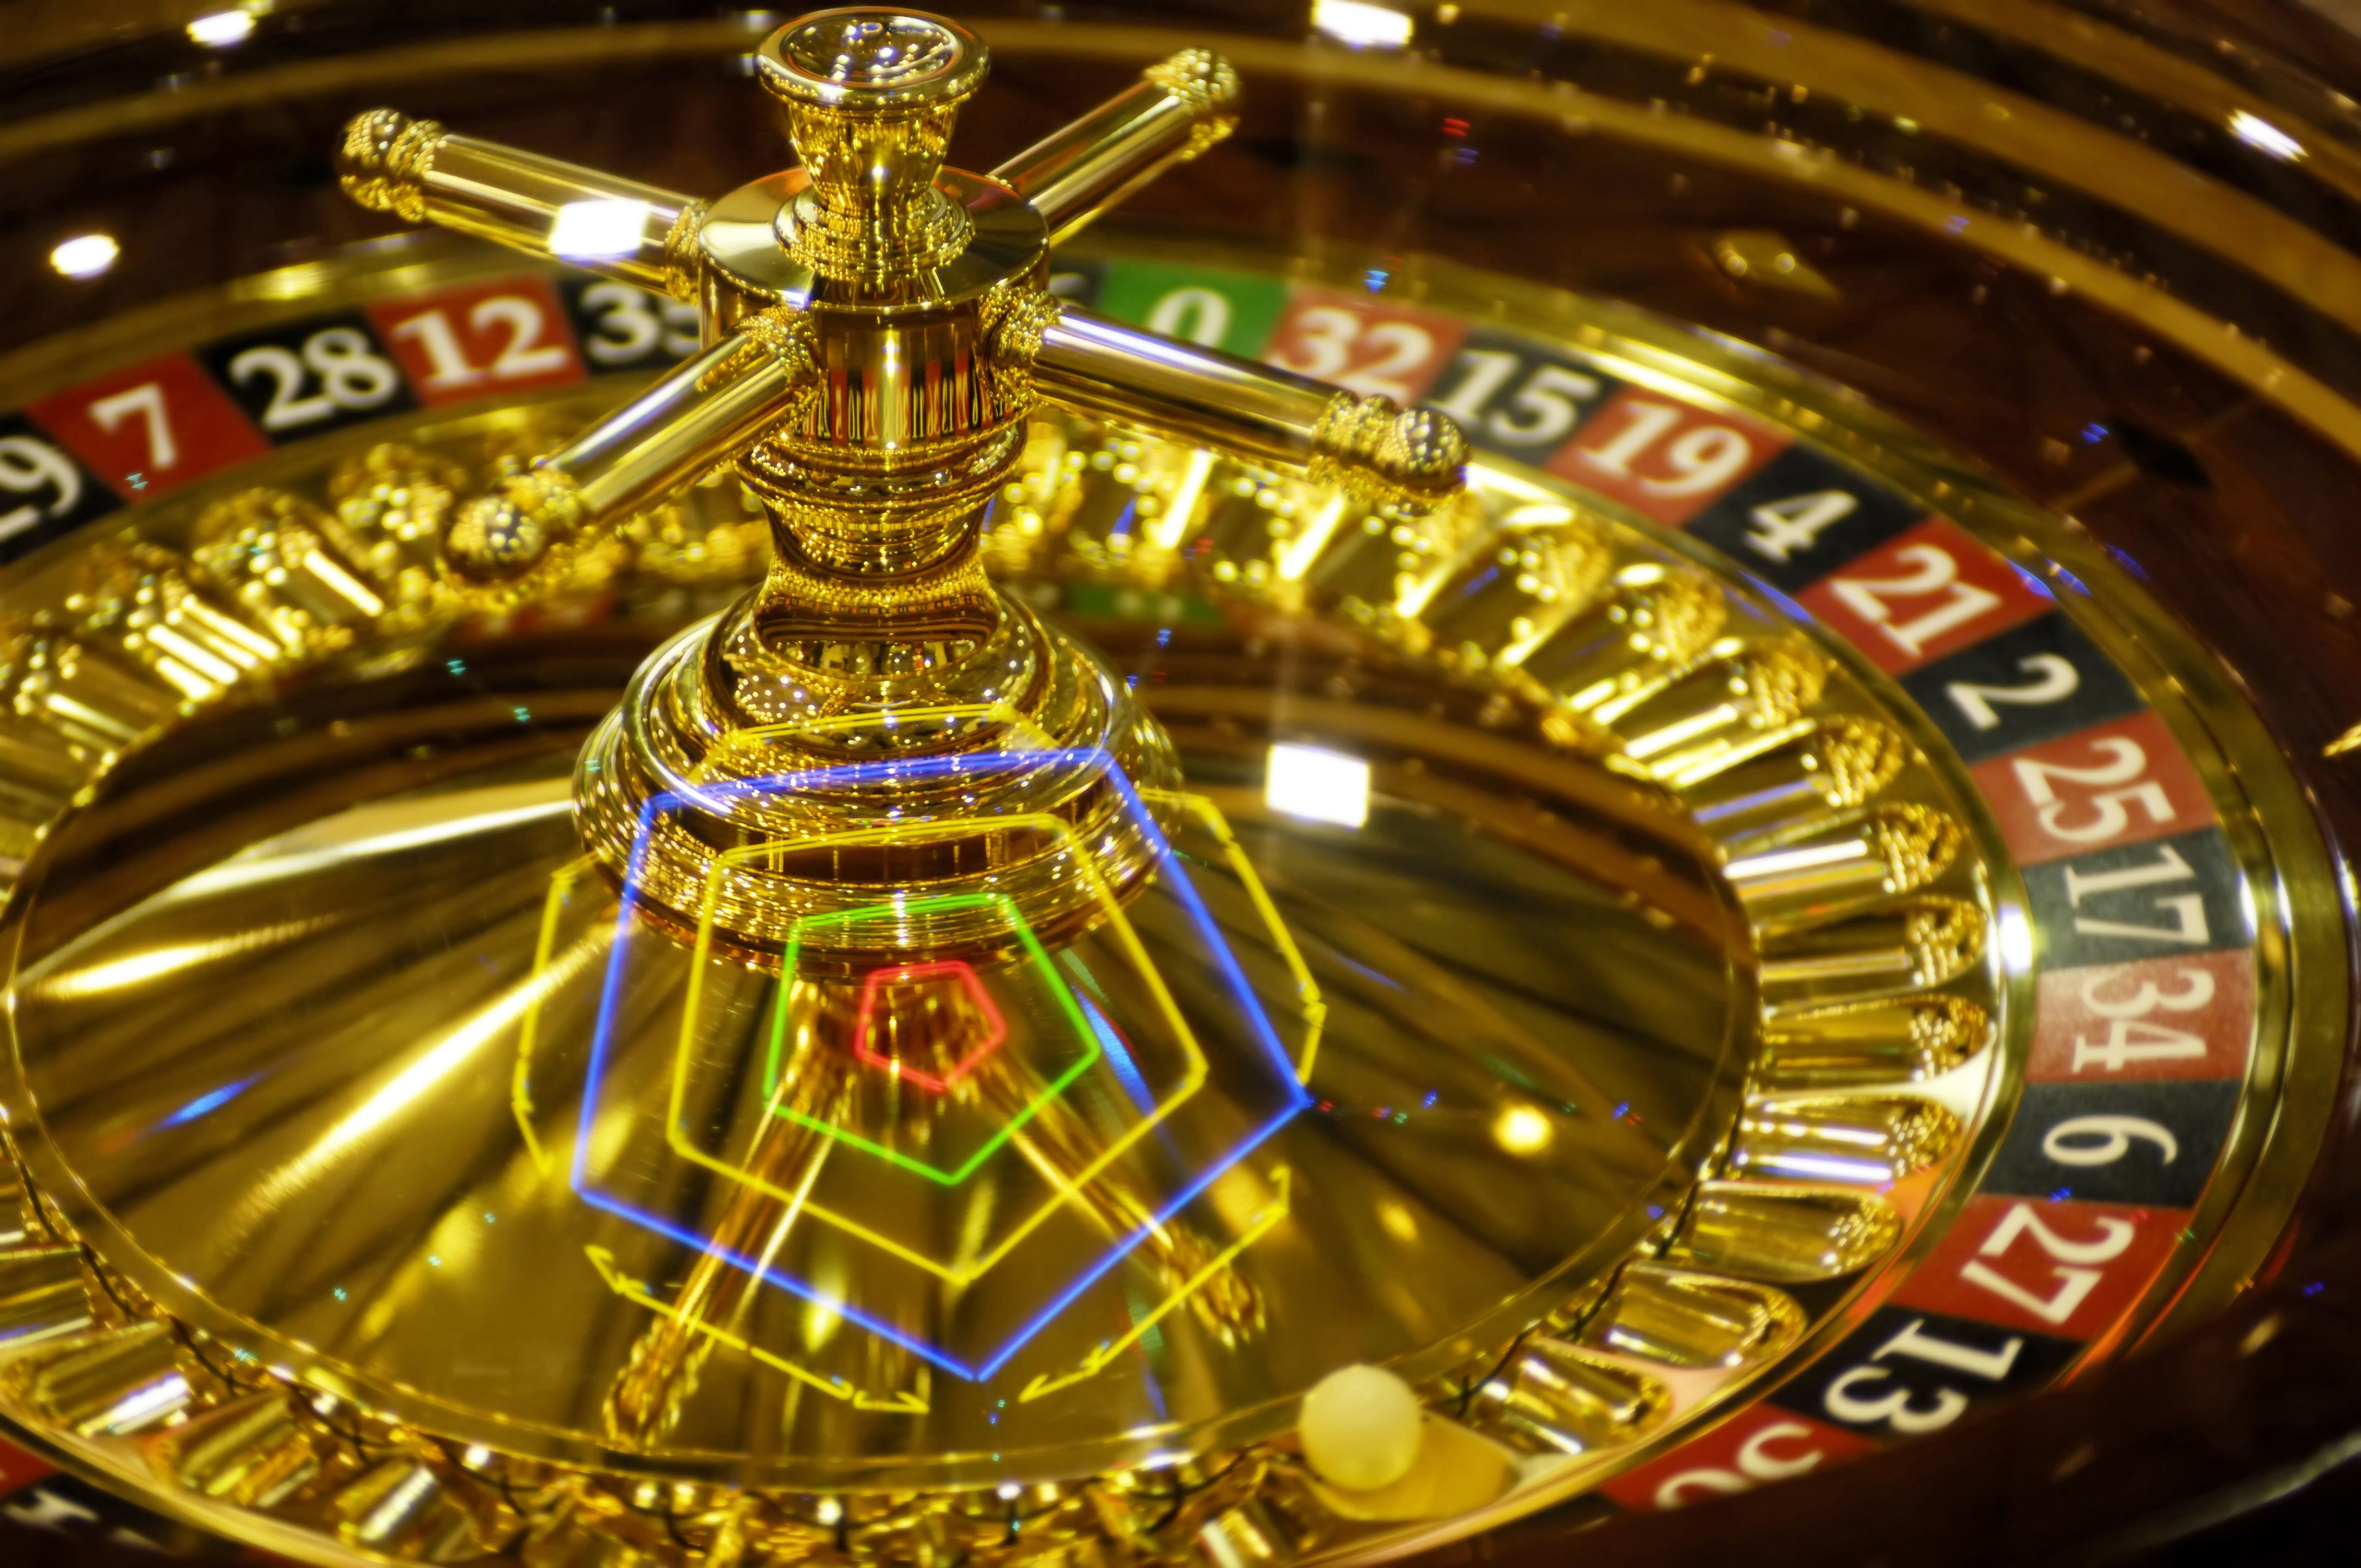 How To Estimate When Gambling Hobby Turns Into Gambling Problem